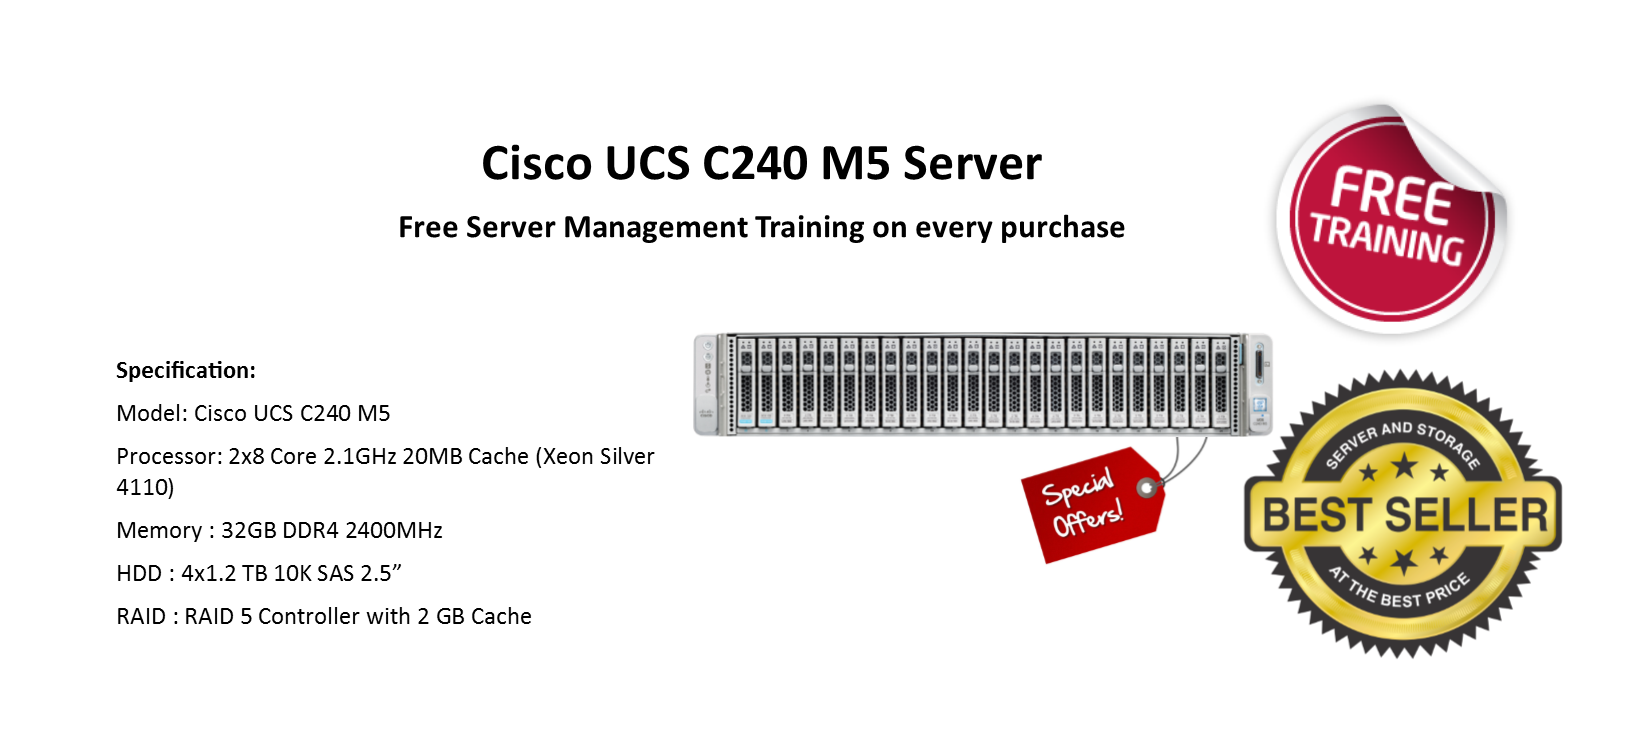 Special Offer in Cisco Server